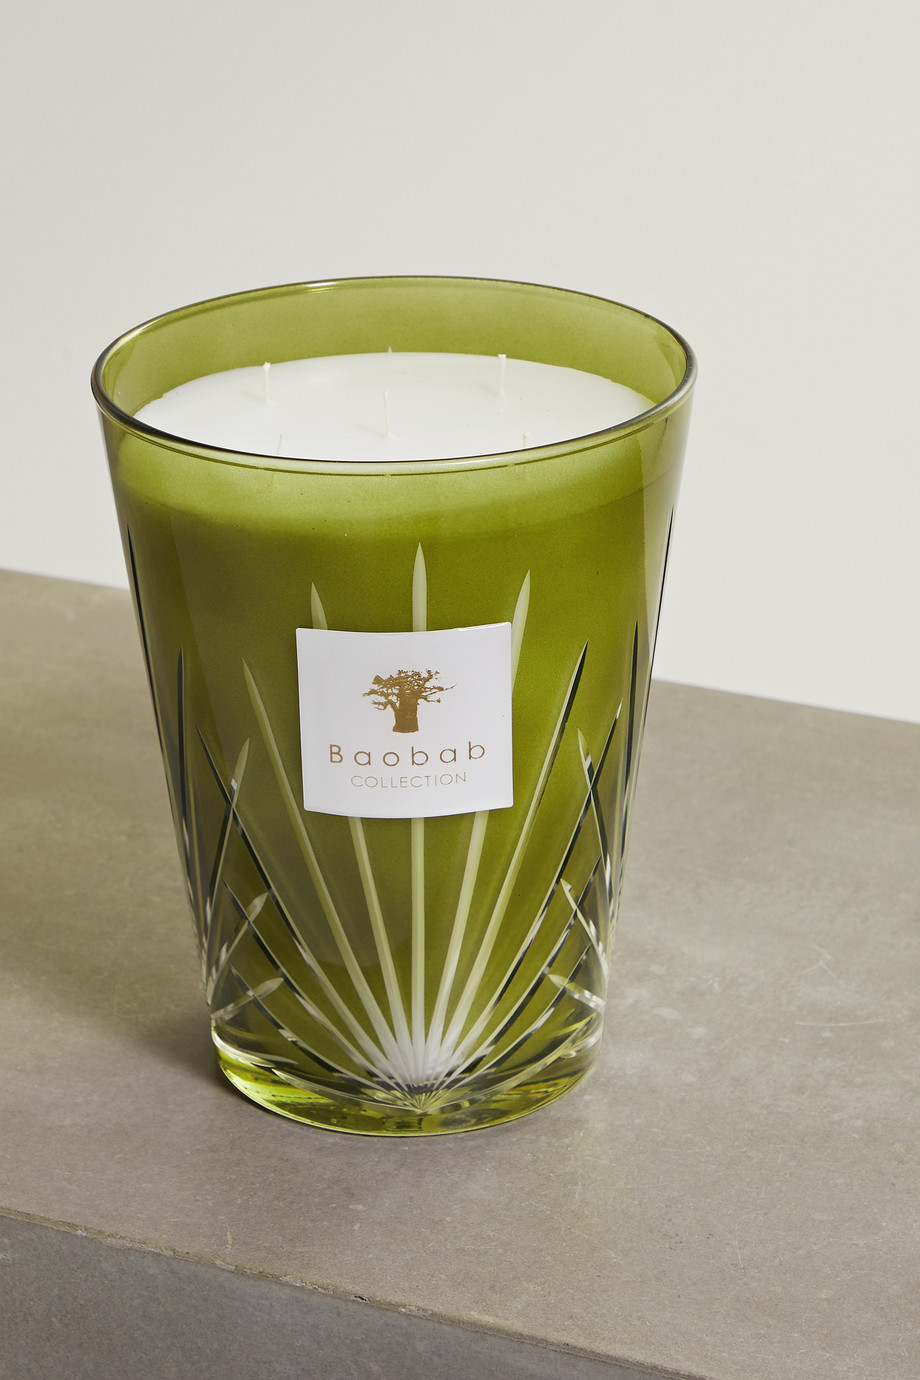 Baobab Collection Bougie parfumée Palm Springs Max 24, 5 kg